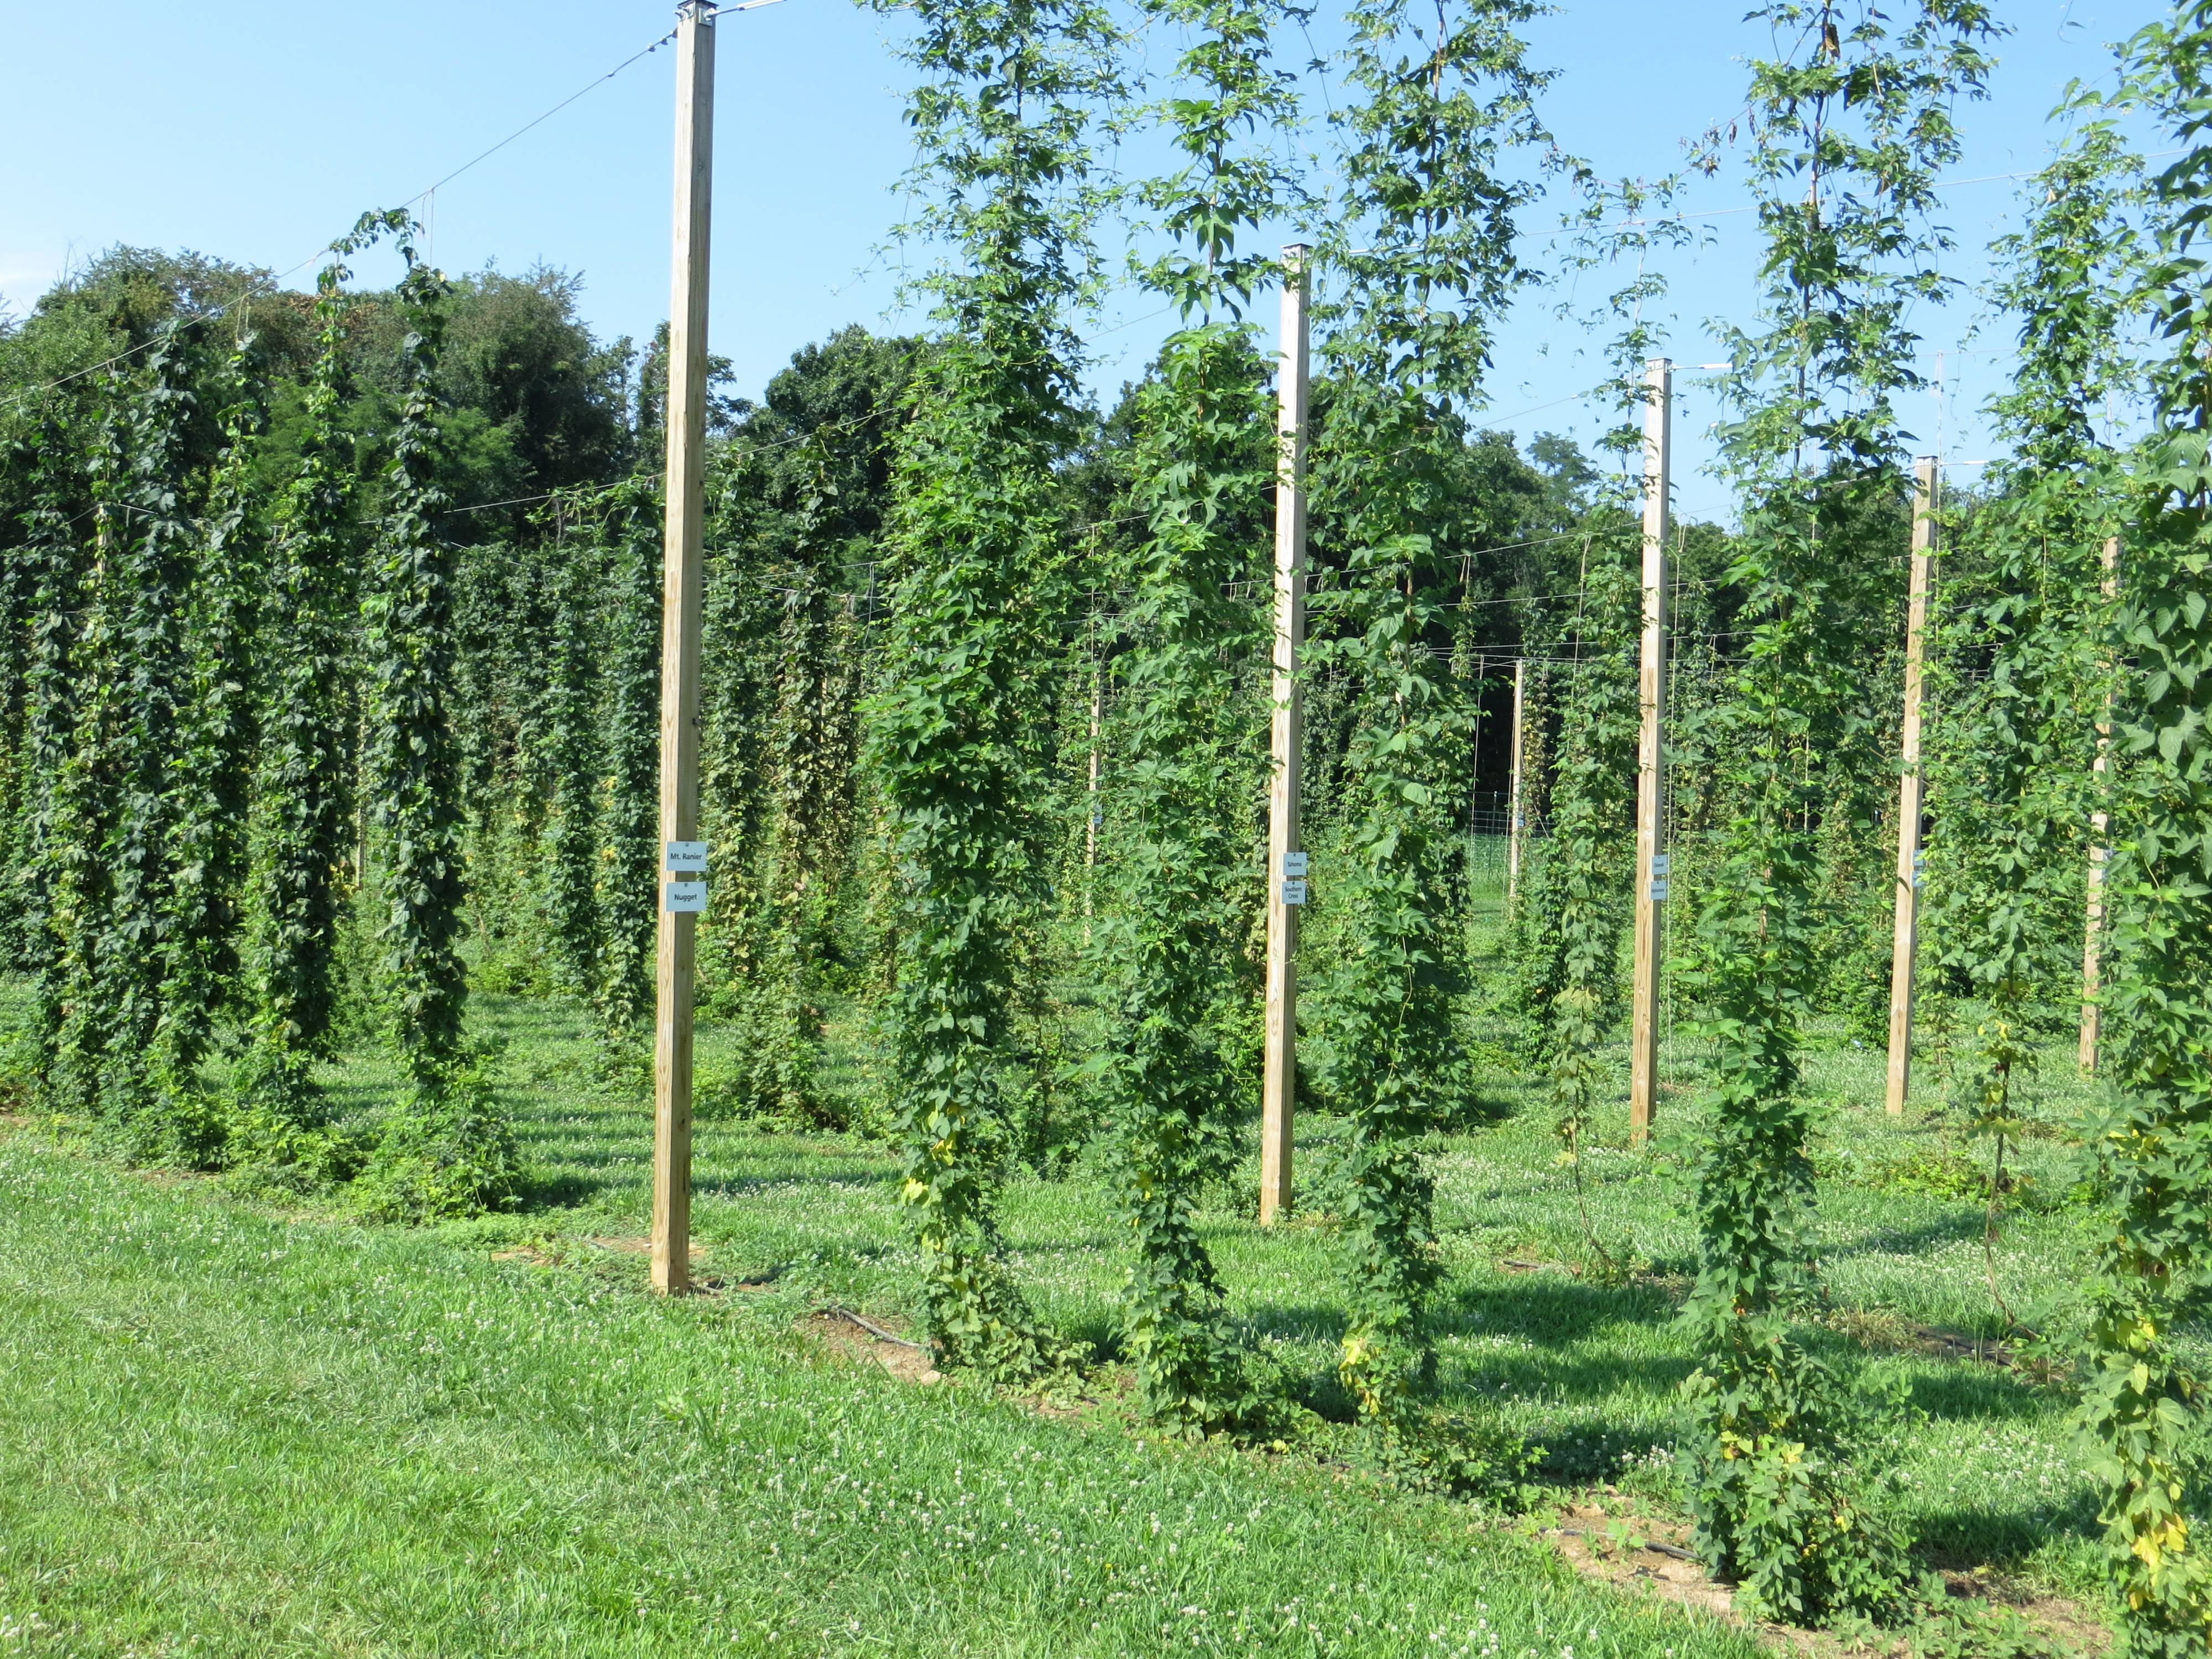 A view of the hop bines at the University of Maryland farm